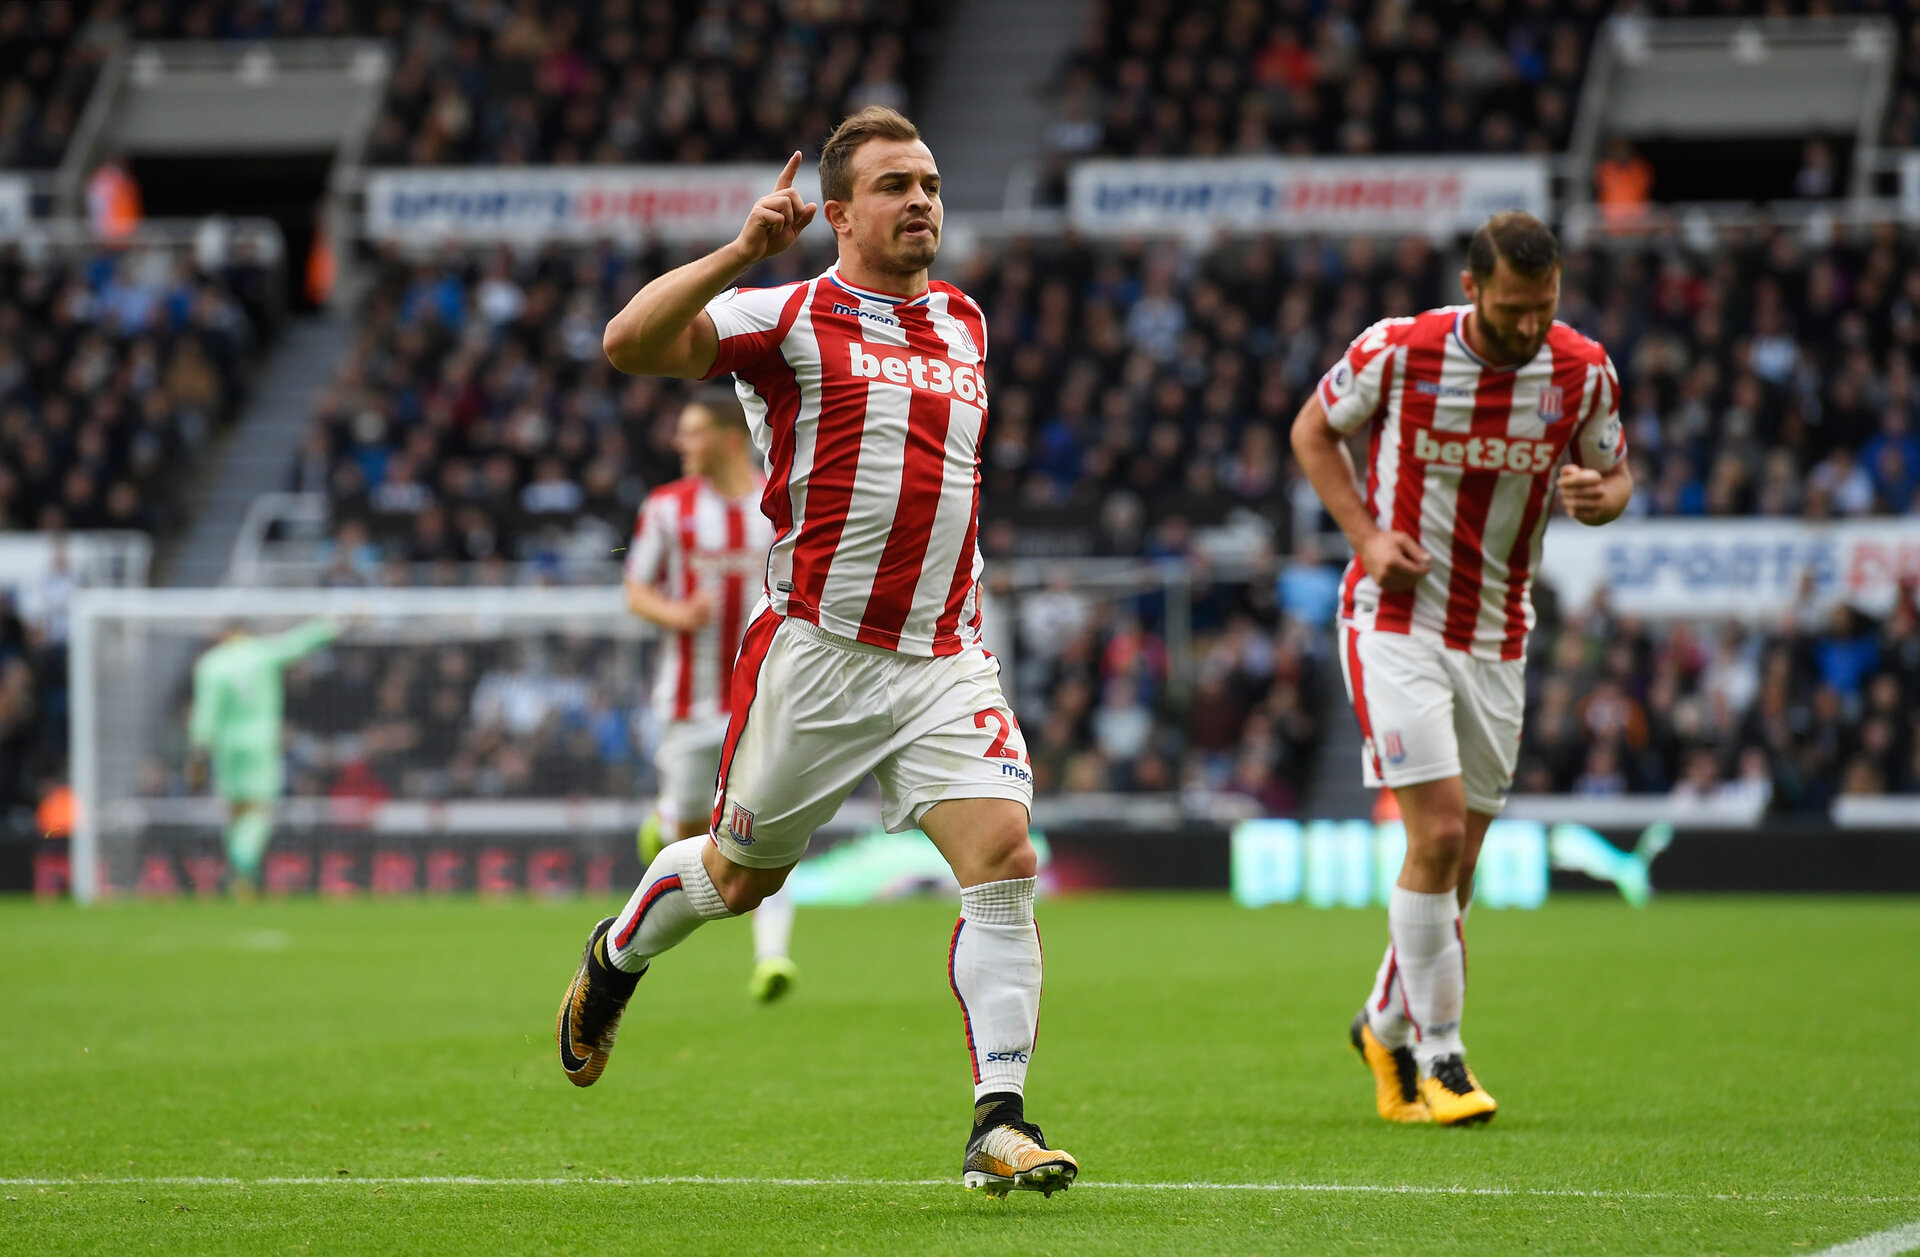 NEWCASTLE UPON TYNE, ENGLAND - SEPTEMBER 16: Xherdan Shaqiri of Stoke City celebrates scoring his sides first goal during the Premier League match between Newcastle United and Stoke City at St. James Park on September 16, 2017 in Newcastle upon Tyne, England.  (Photo by Stu Forster/Getty Images)